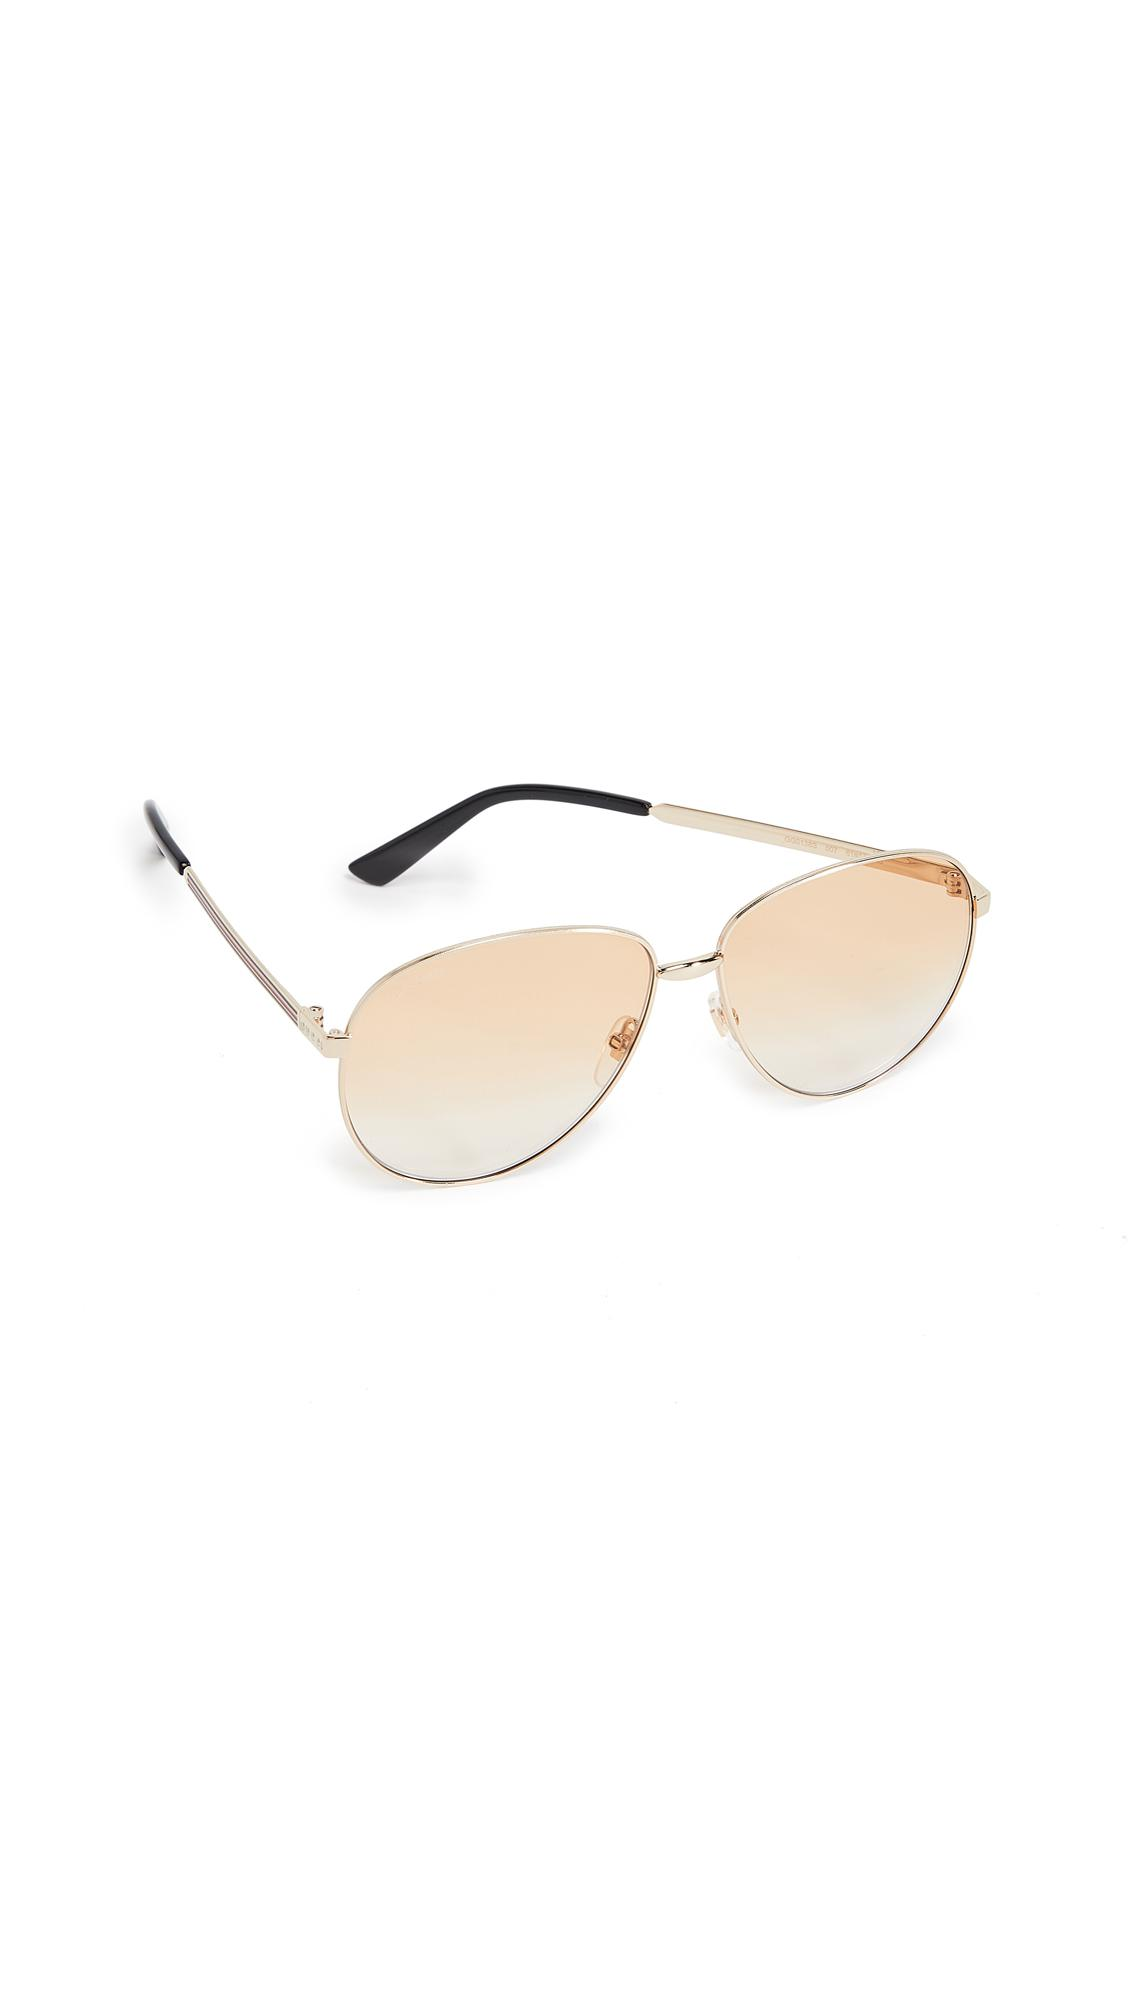 4ffcff916eb Gucci Vintage Web Pilot Aviators In Gold Brown Gradient